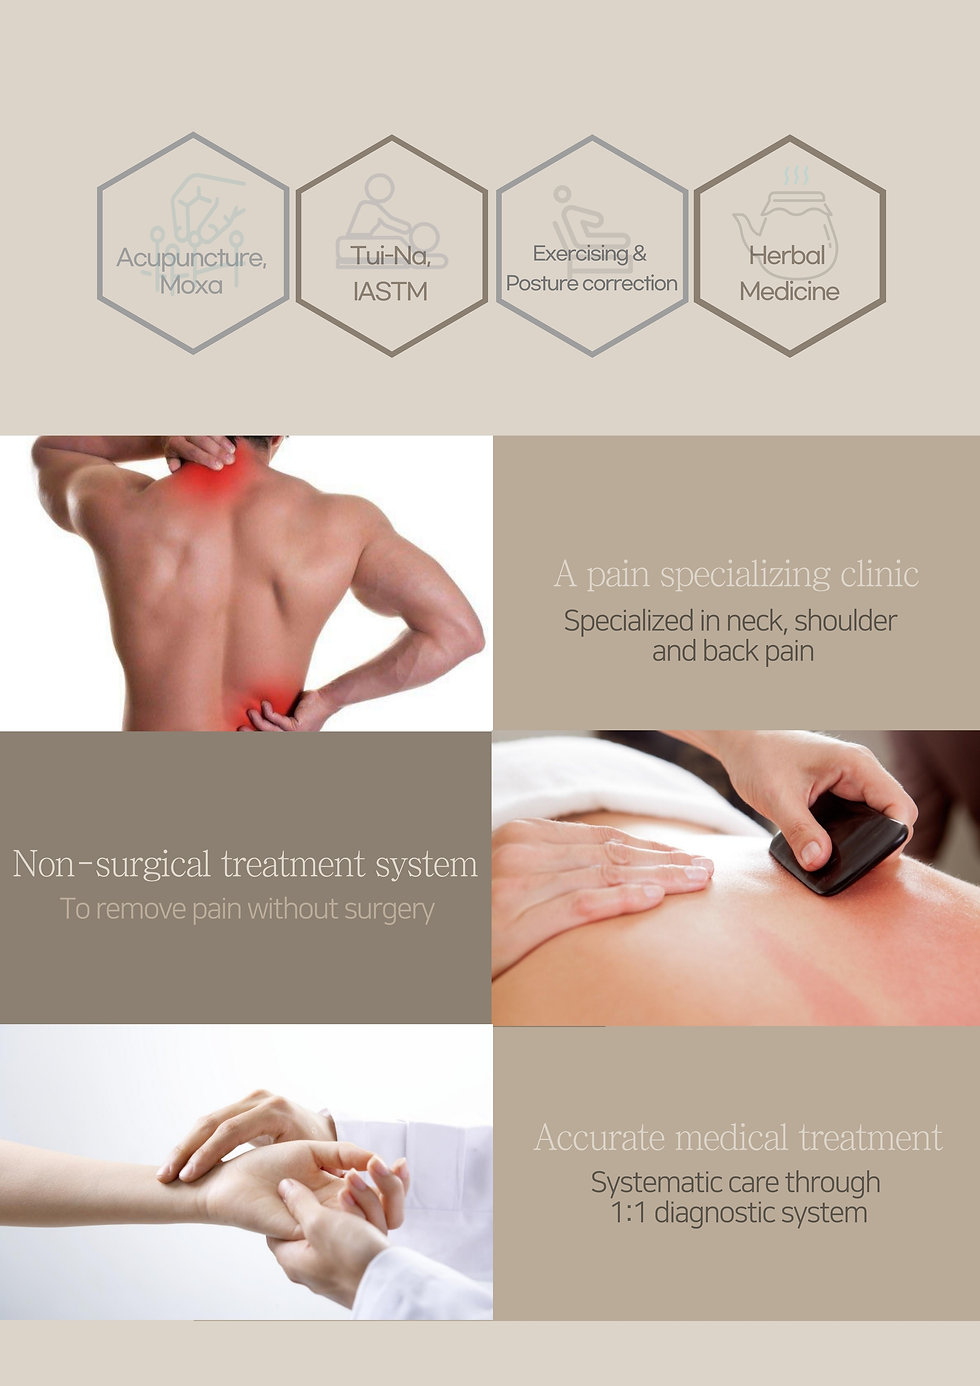 acupuncture methods  Specializes in neck, Shoulder and back pain